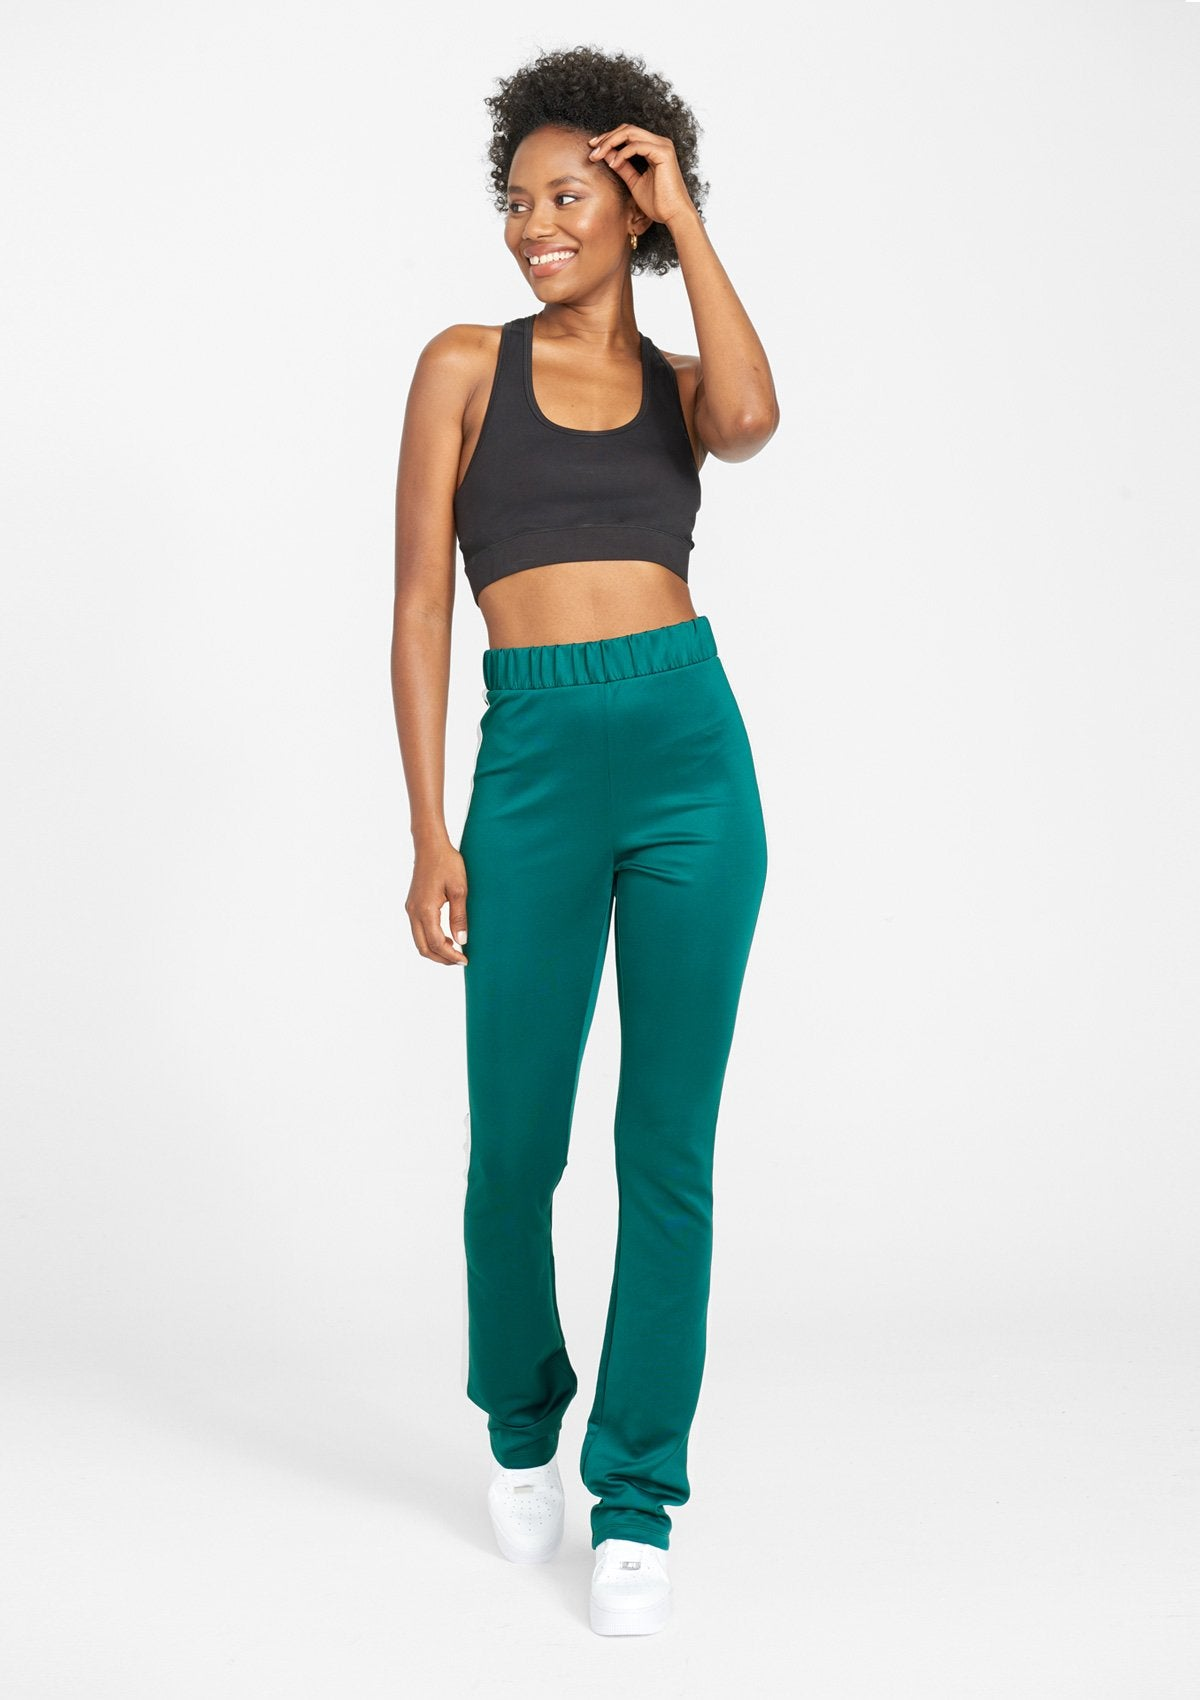 Alloy Apparel Tall Track Pants for Women in Jade Ivory Size 2XL length 37   Polyester